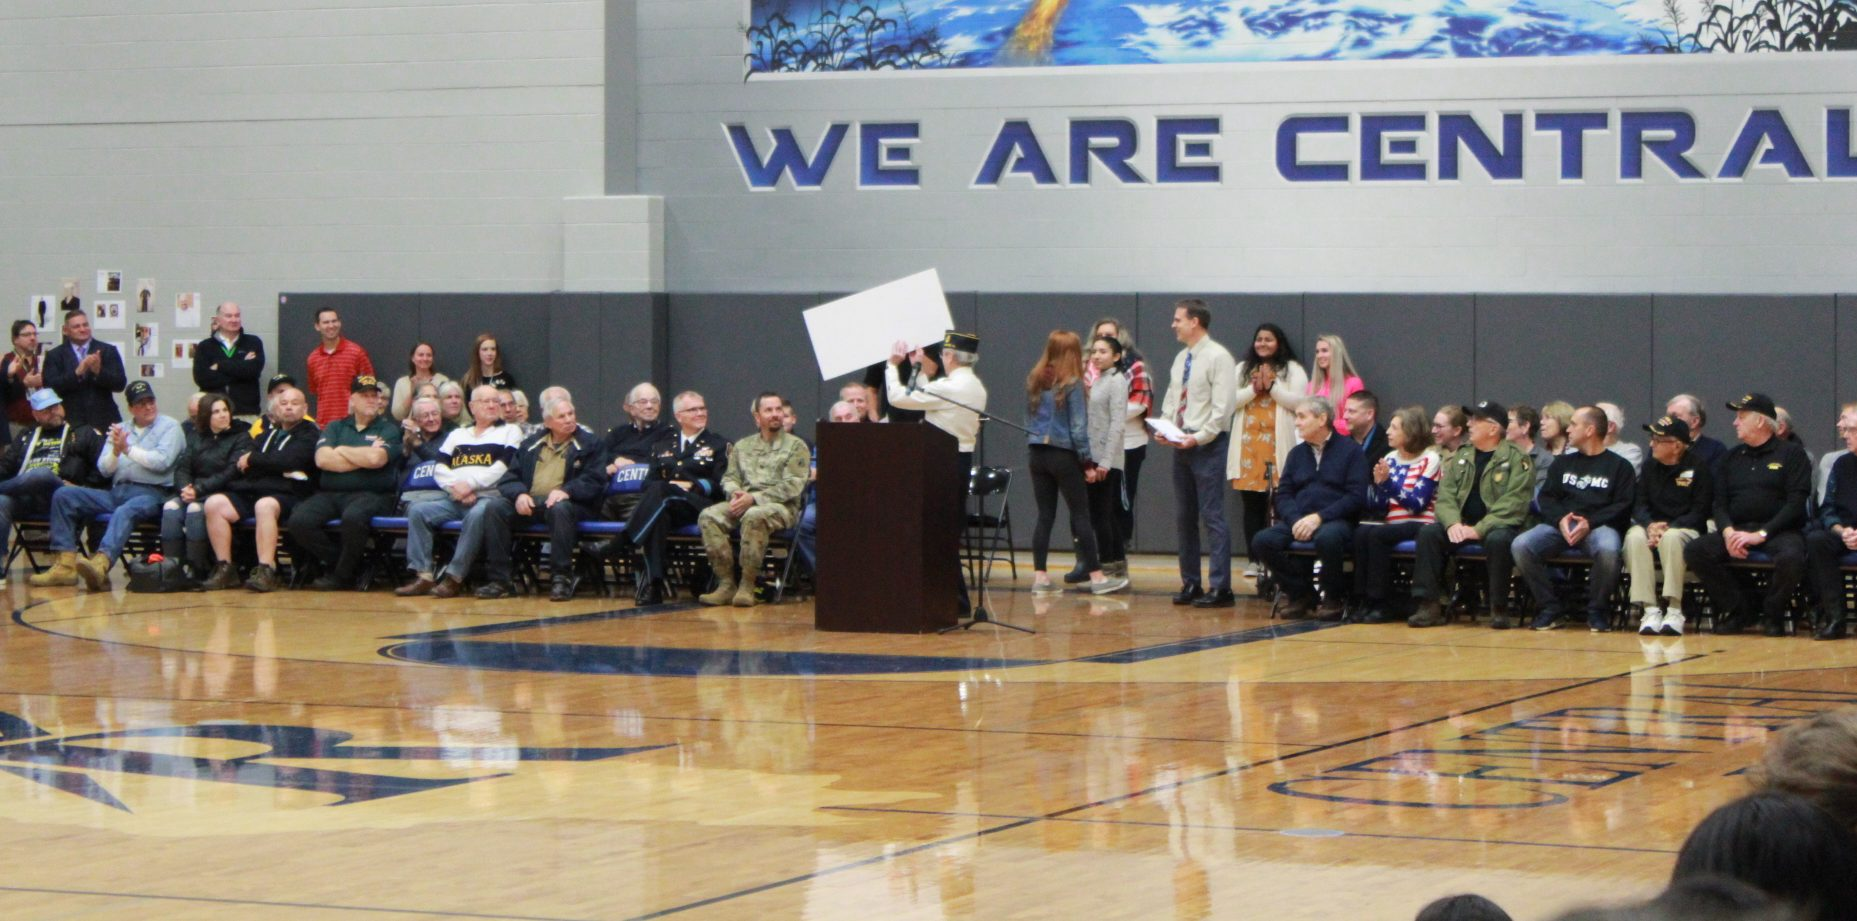 Veterans in attendance at Veterans Day assembly